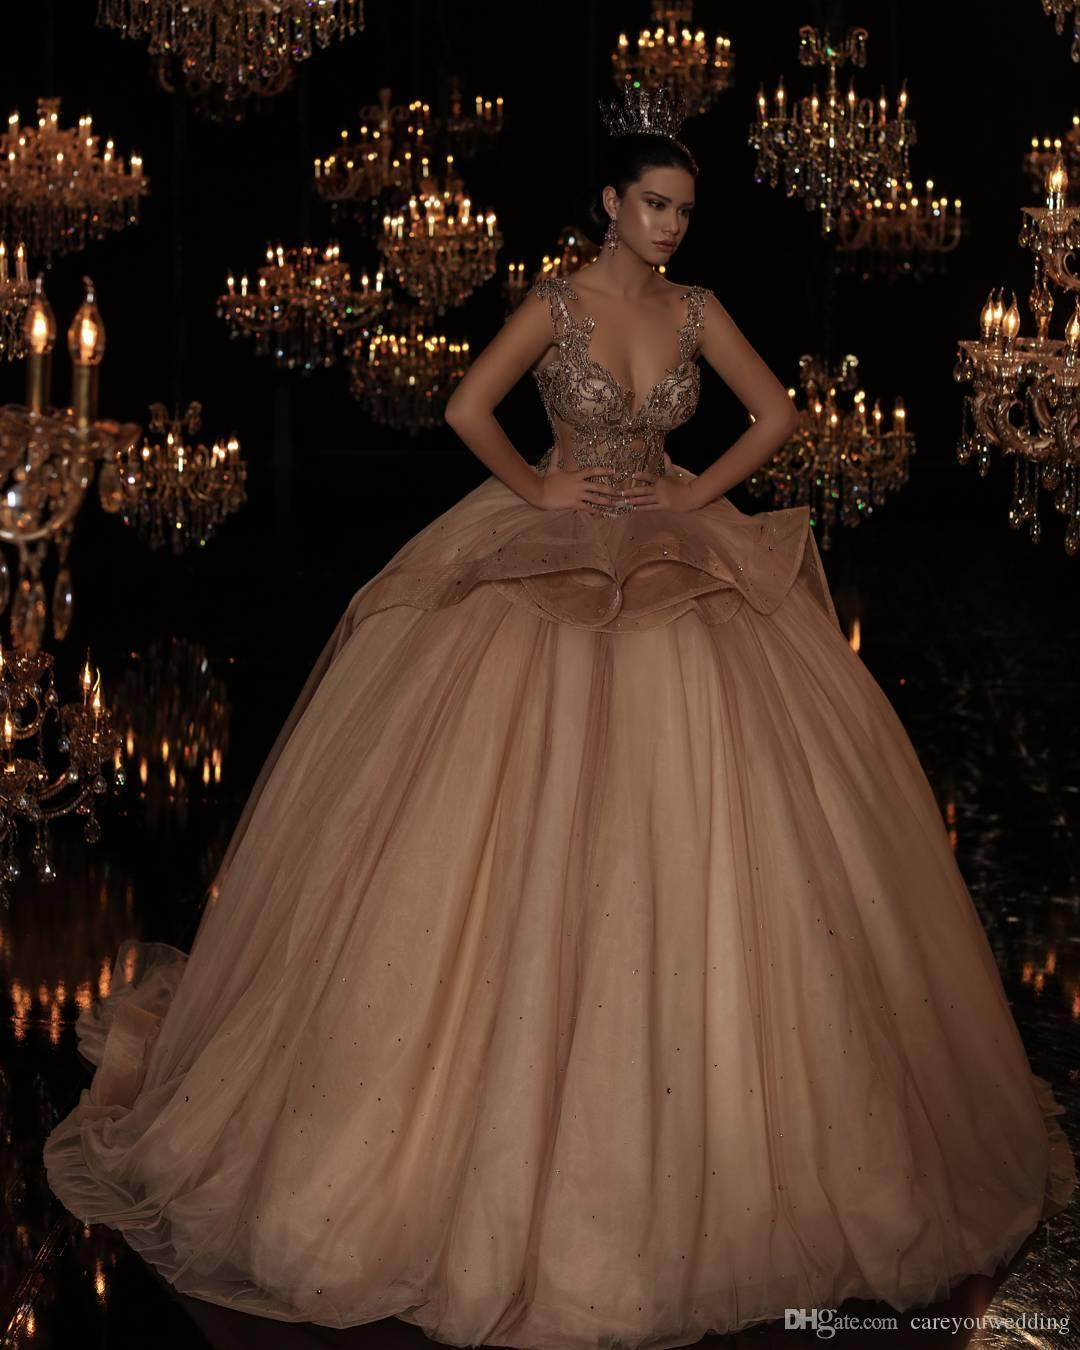 4864d833be3 2018 New Design Champagne Ball Gown Quinceanera Dresses Spaghetti Straps  Sequins Tiered Tulle Ruffles Chapel Train Quinceanera Gowns